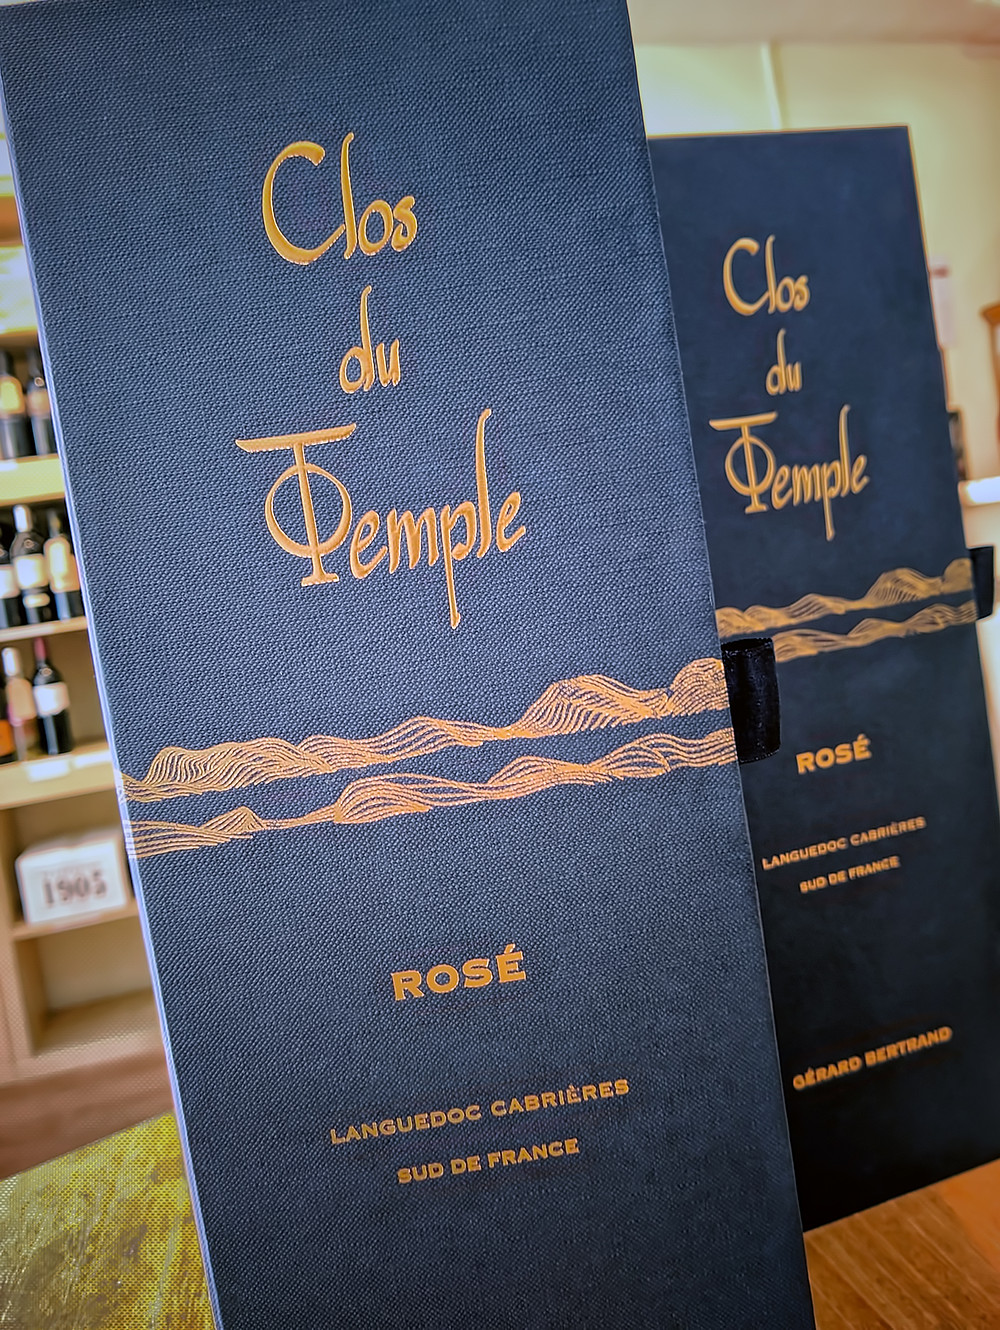 Blue gift box for Clos du Temple by Gérard Bertrand with gold coloured lettering and graphics.